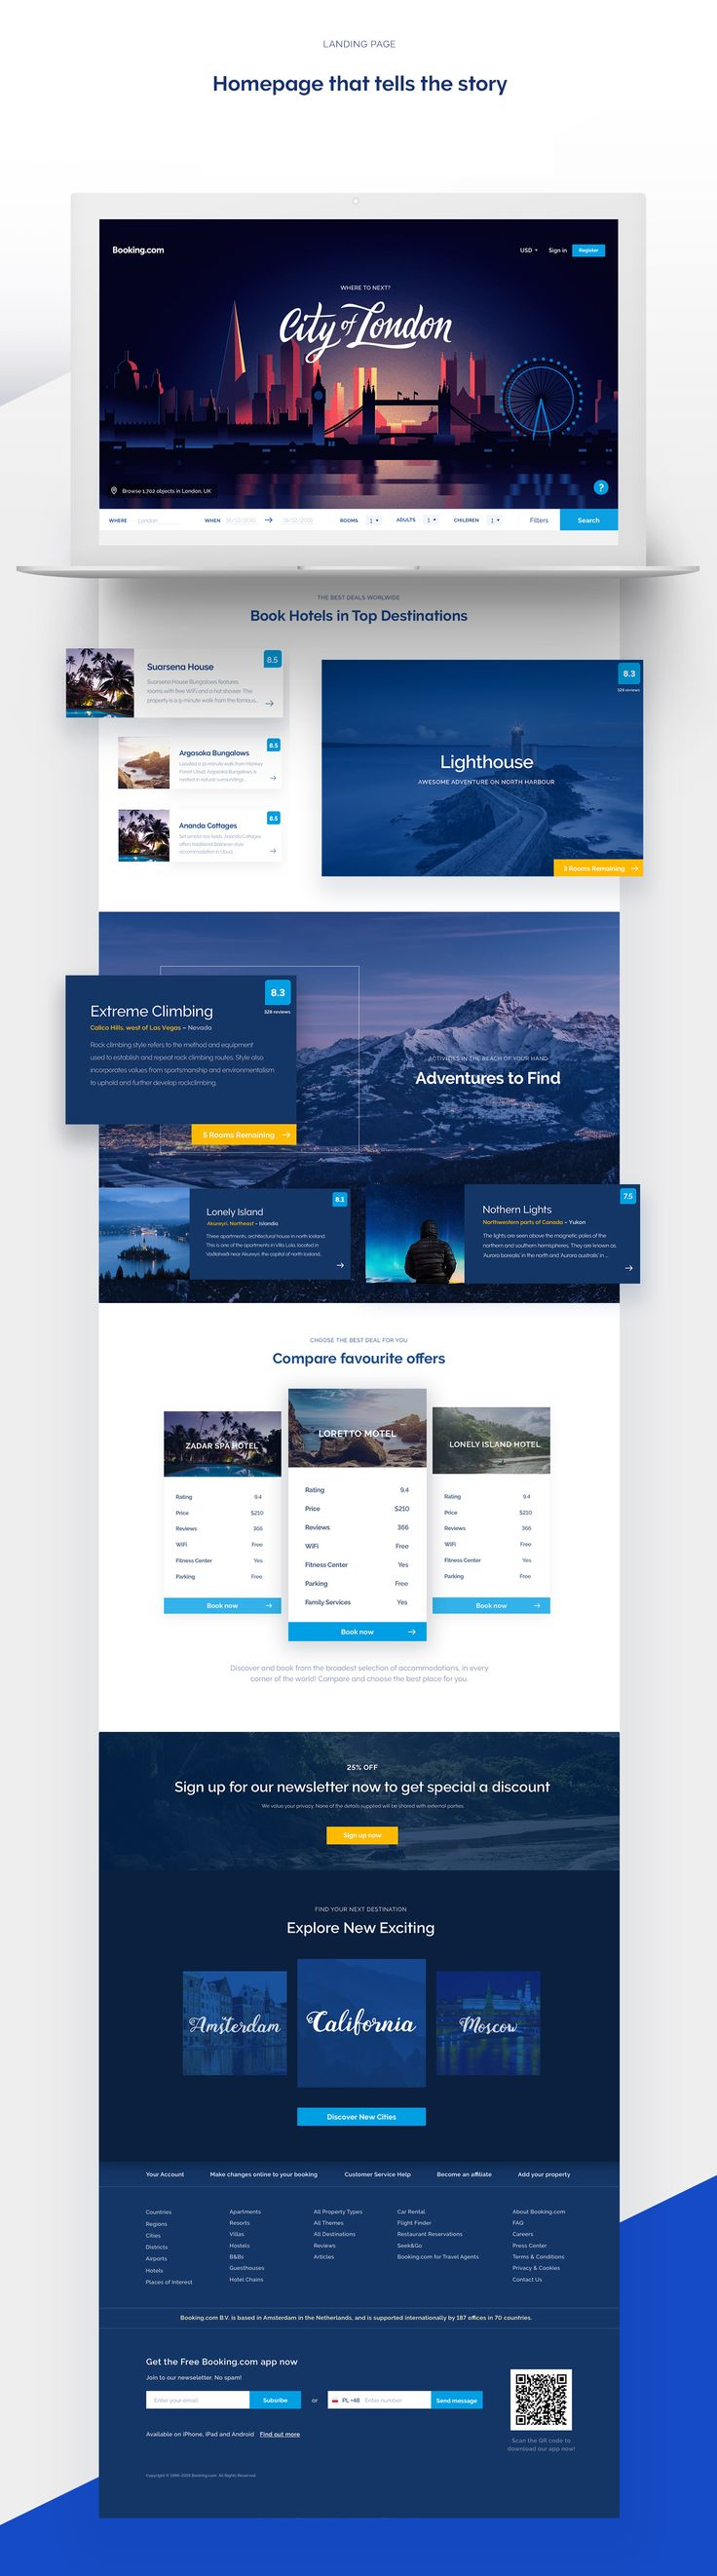 Booking.com Website Design